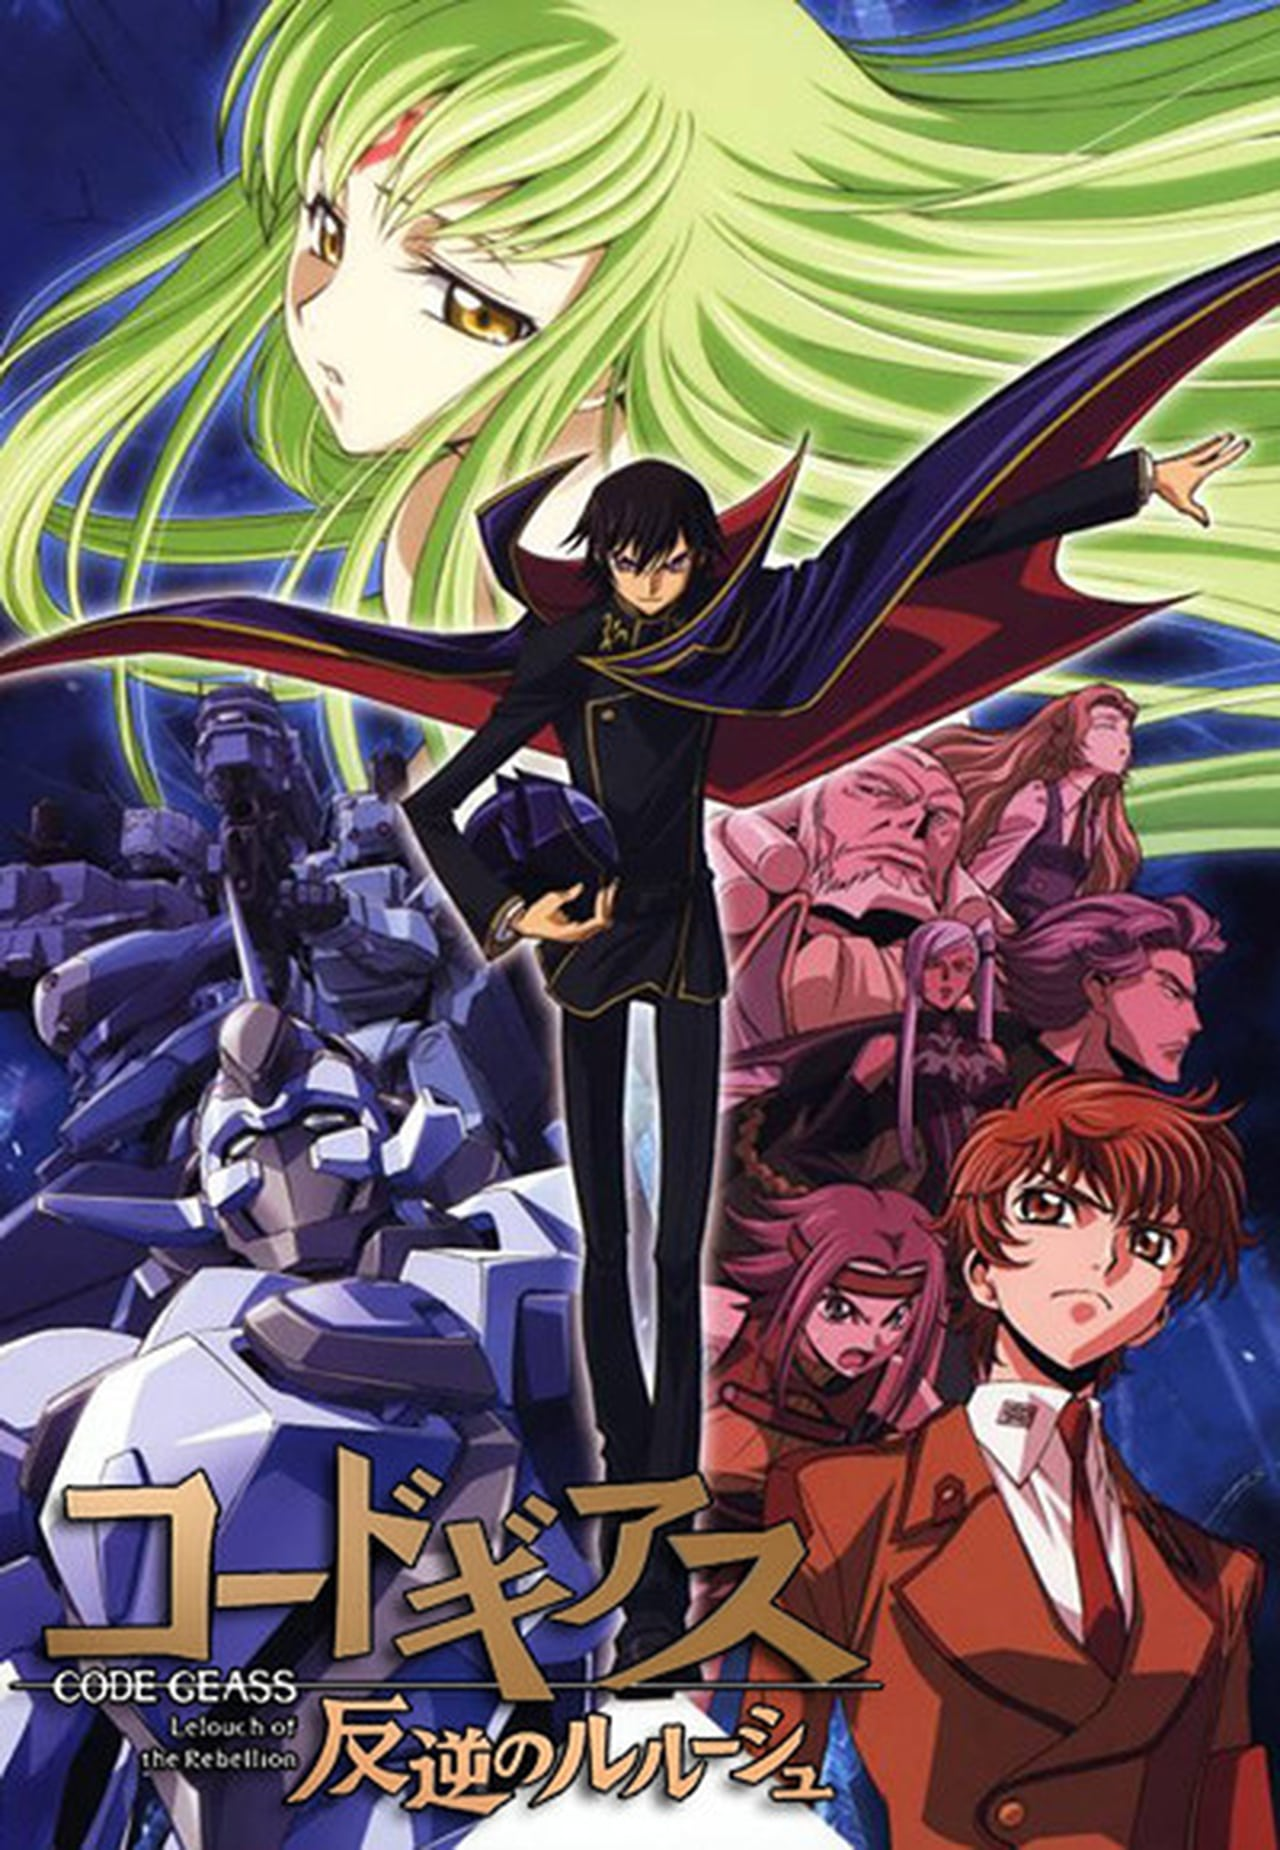 Putlocker Code Geass: Lelouch Of The Rebellion Season 1 (2006)